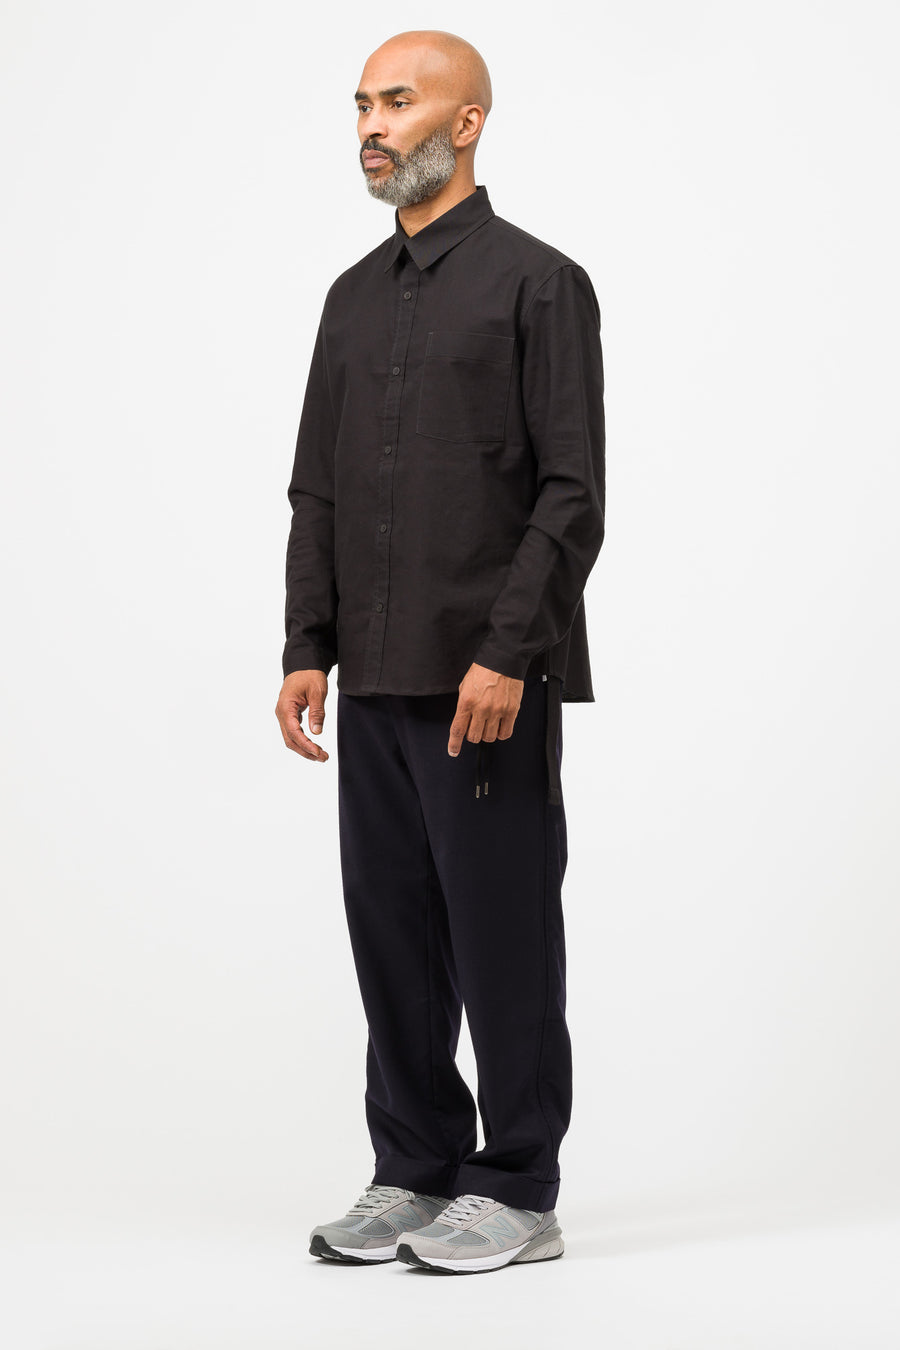 Craig Green Oxford Shirt in Black - Notre